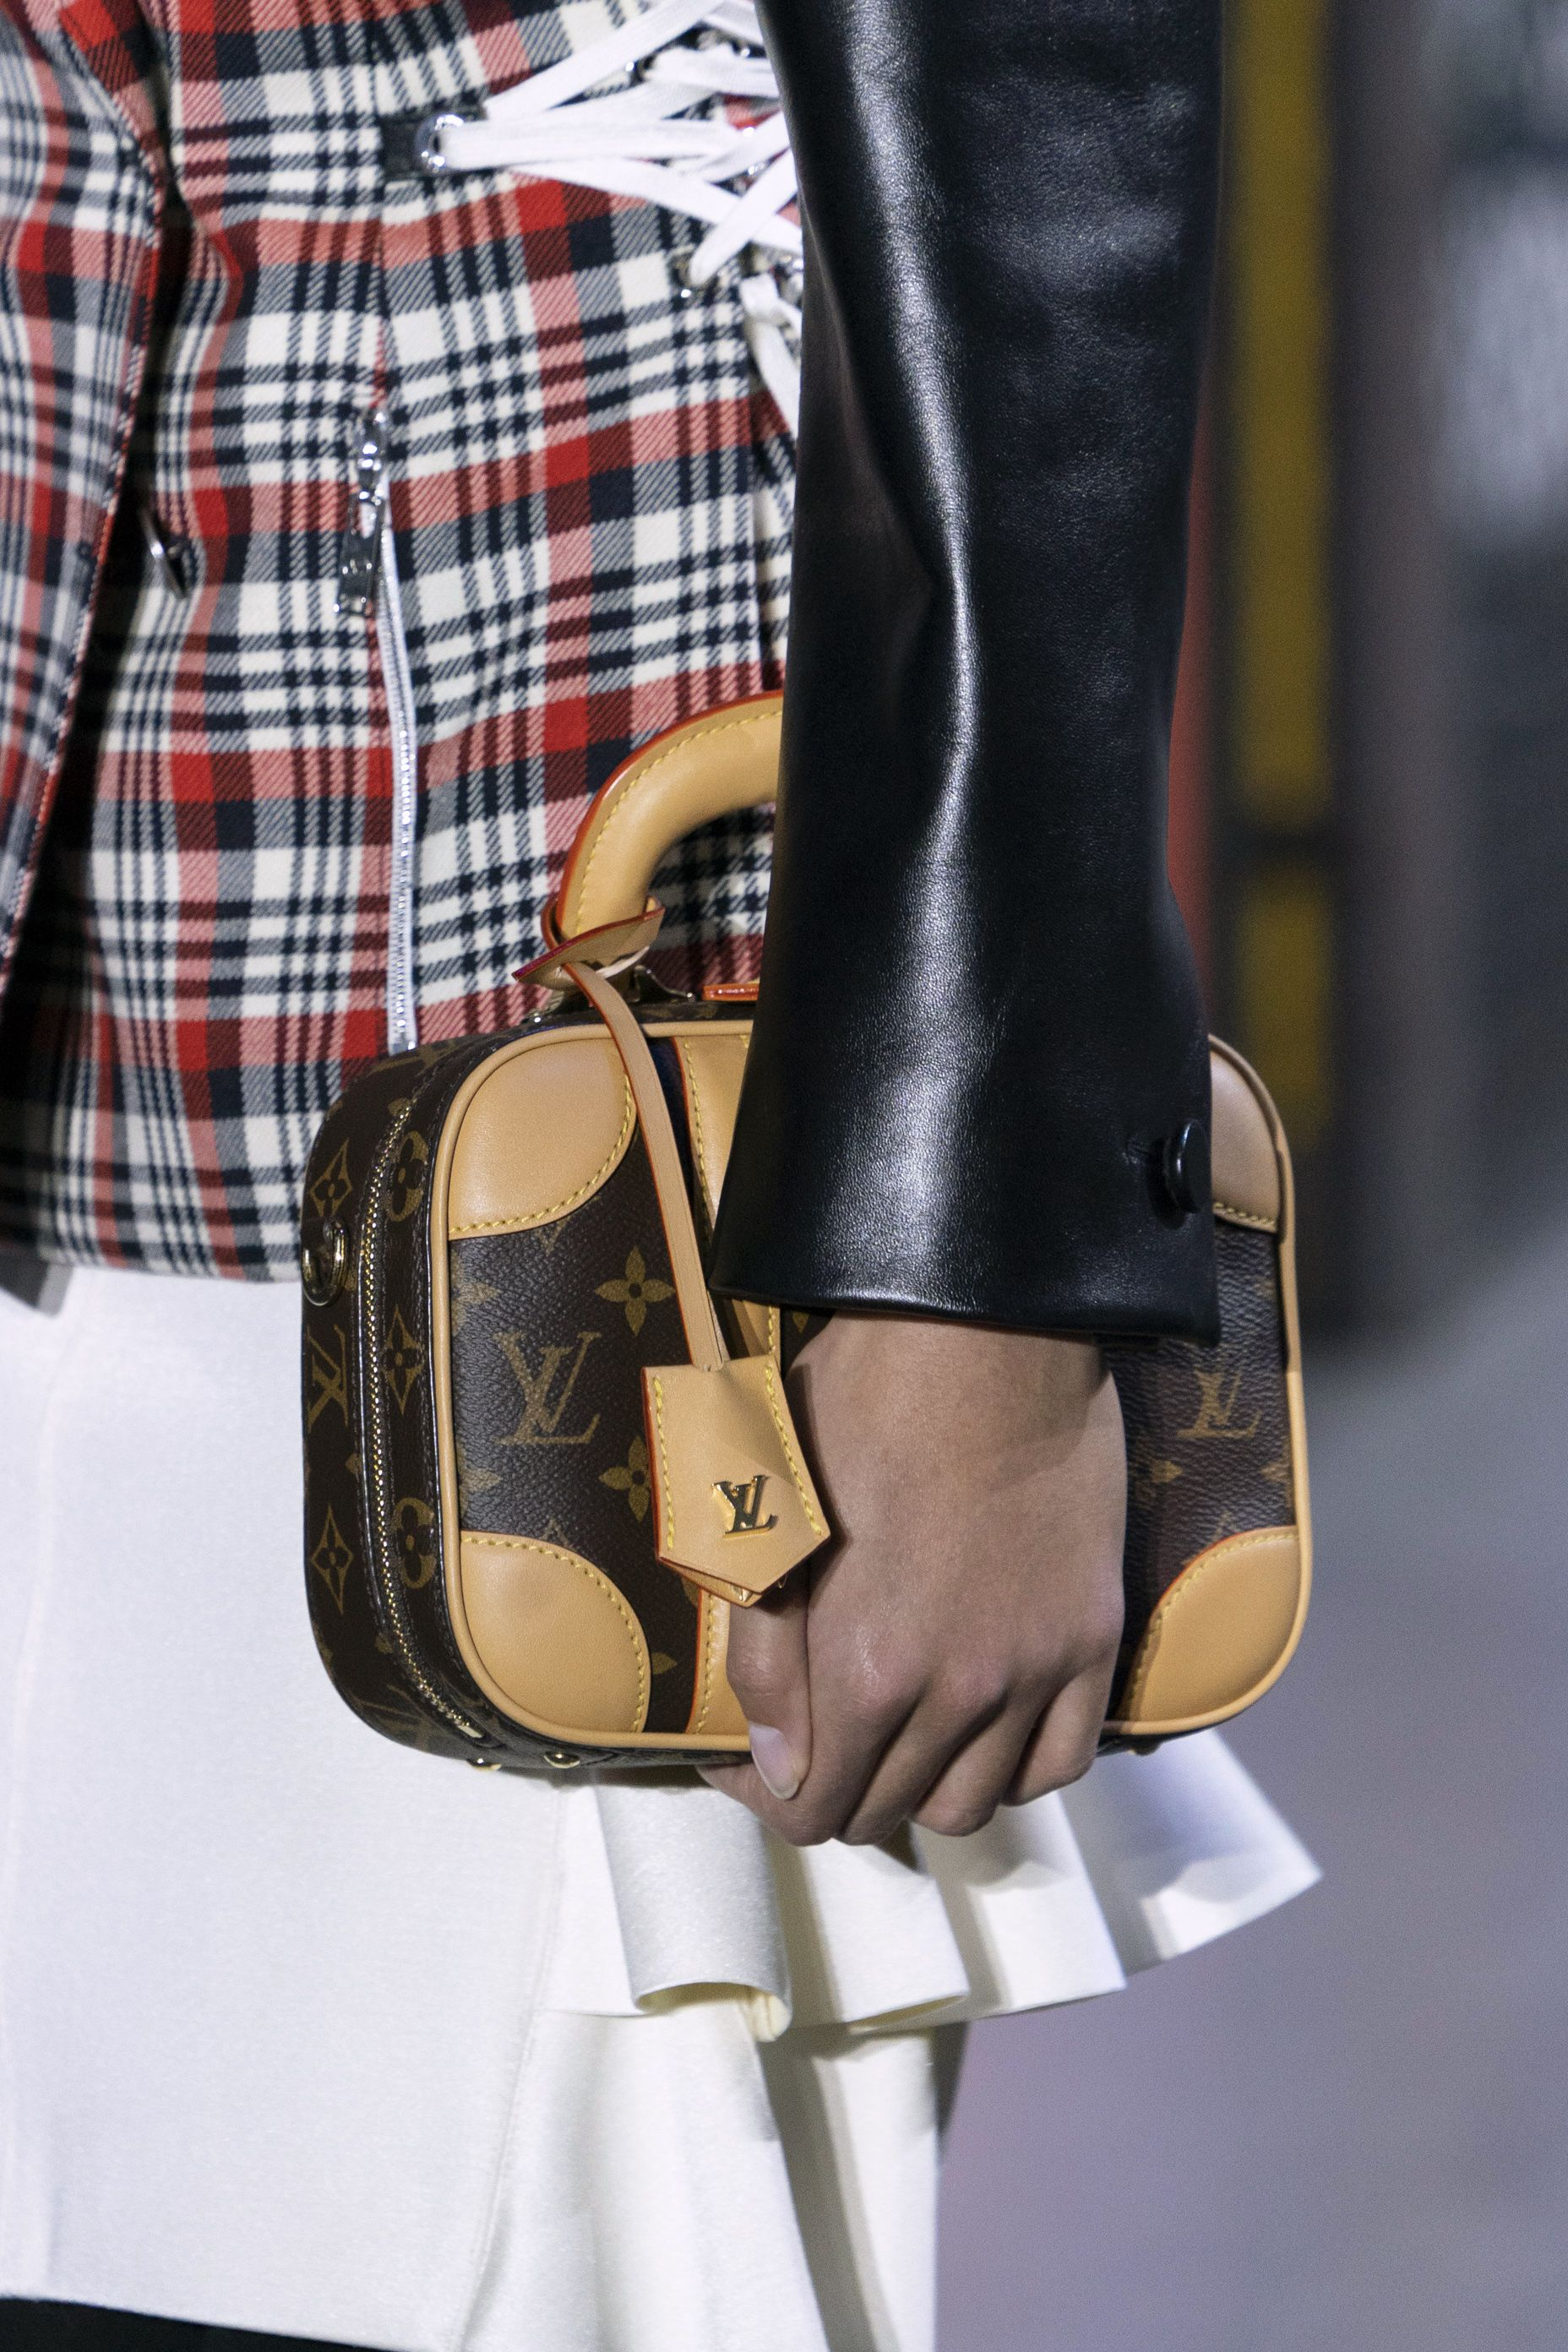 AW19 bag trends